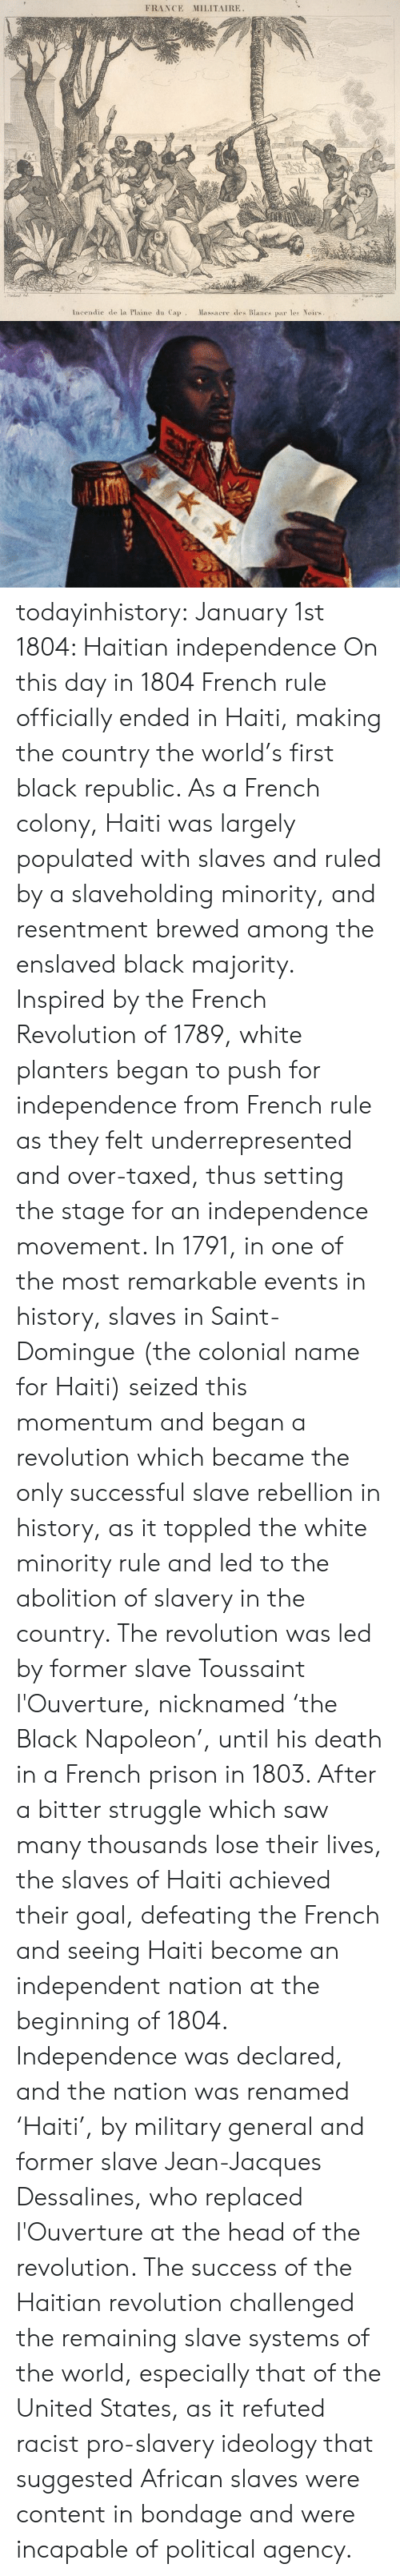 Head, Saw, and Struggle: FRANCE MILITAIRE  Incendie de la Plaine du Cap Massacre des Blancs par le Noirs todayinhistory: January 1st 1804: Haitian independence On this day in 1804 French rule officially ended in Haiti, making the country the world's first black republic. As a French colony, Haiti was largely populated with slaves and ruled by a slaveholding minority, and resentment brewed among the enslaved black majority. Inspired by the French Revolution of 1789, white planters began to push for independence from French rule as they felt underrepresented and over-taxed, thus setting the stage for an independence movement. In 1791, in one of the most remarkable events in history, slaves in Saint-Domingue (the colonial name for Haiti) seized this momentum and began a revolution which became the only successful slave rebellion in history, as it toppled the white minority rule and led to the abolition of slavery in the country. The revolution was led by former slave Toussaint l'Ouverture, nicknamed 'the Black Napoleon', until his death in a French prison in 1803. After a bitter struggle which saw many thousands lose their lives, the slaves of Haiti achieved their goal, defeating the French and seeing Haiti become an independent nation at the beginning of 1804. Independence was declared, and the nation was renamed 'Haiti', by military general and former slave Jean-Jacques Dessalines, who replaced l'Ouverture at the head of the revolution. The success of the Haitian revolution challenged the remaining slave systems of the world, especially that of the United States, as it refuted racist pro-slavery ideology that suggested African slaves were content in bondage and were incapable of political agency.